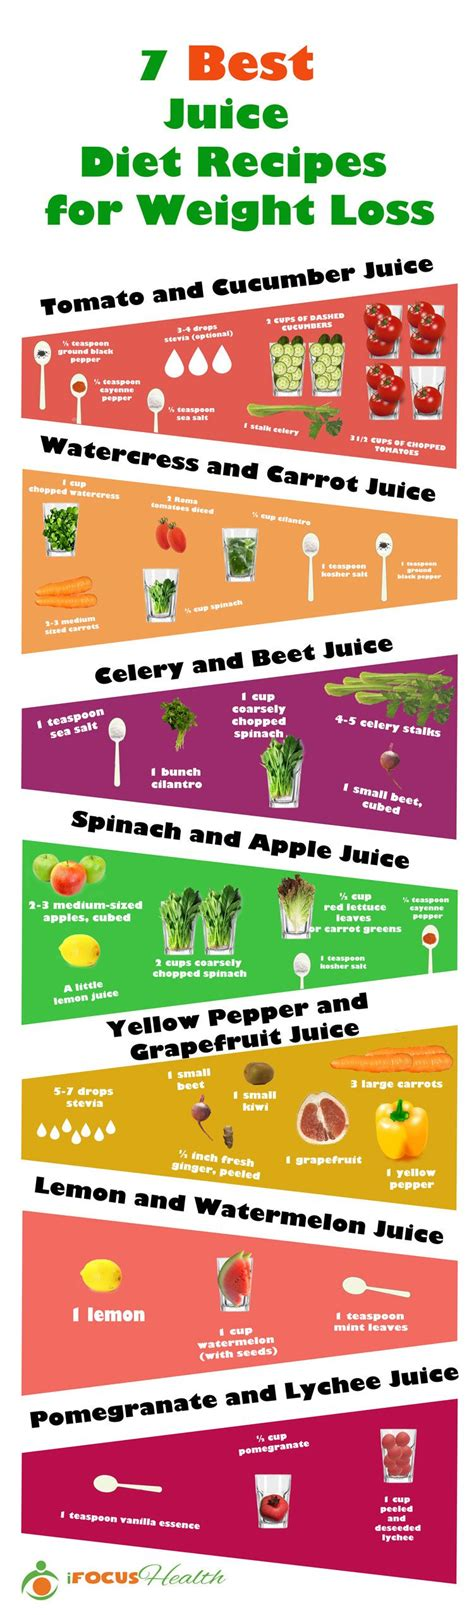 weight loss juice recipes 7 simple juicing recipes for weight loss infographic